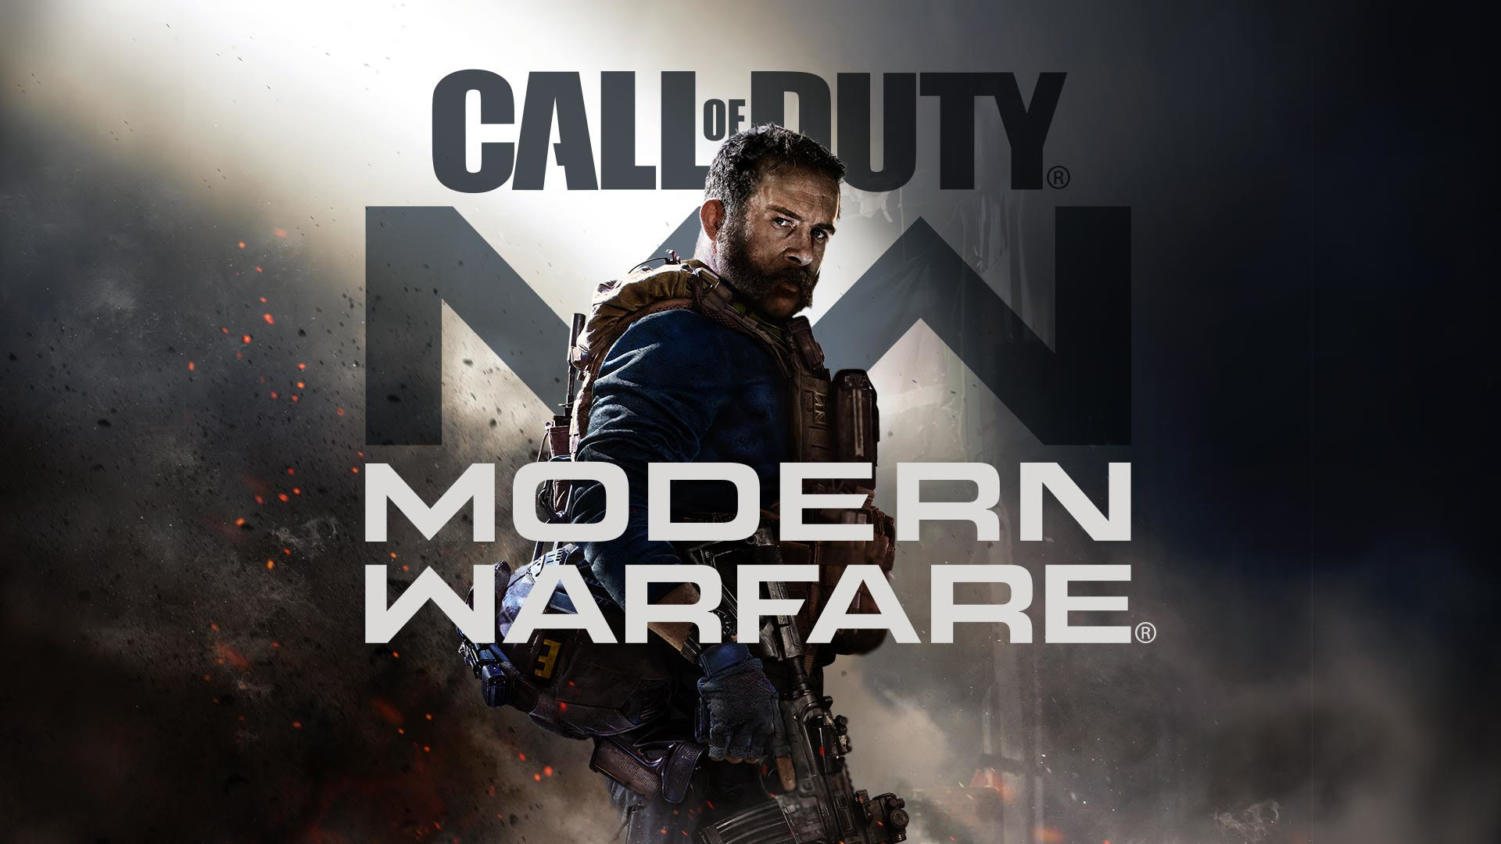 Call of Duty Modern Warfare is one of the best reviewed games this year so far.